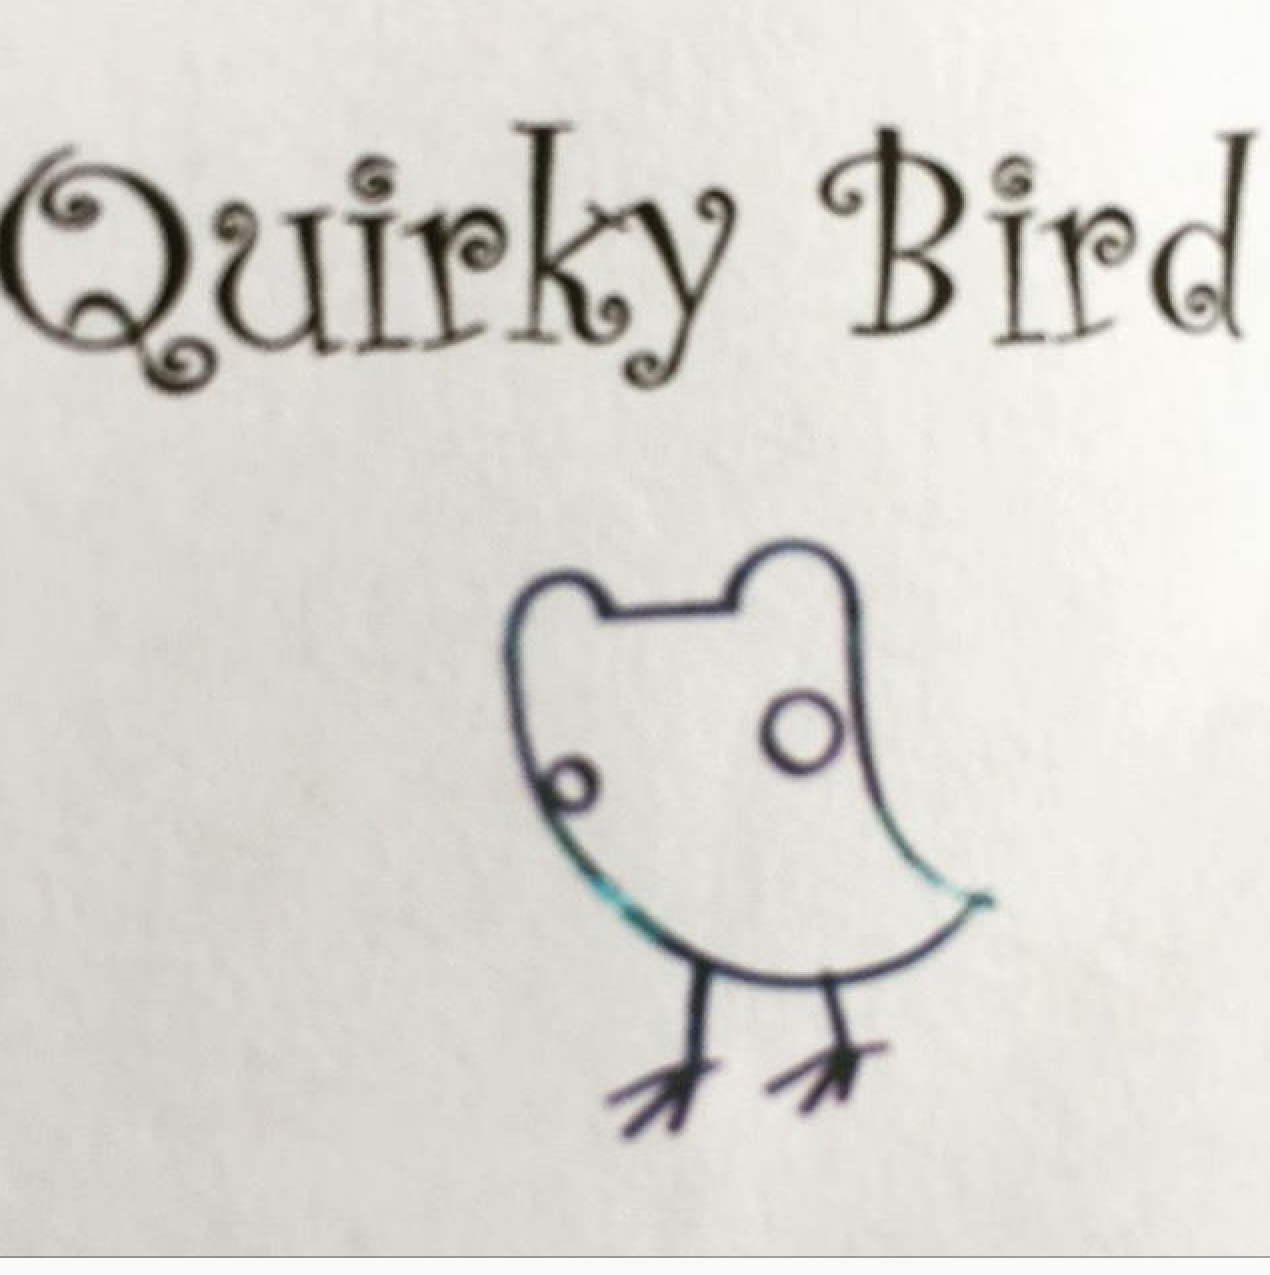 Quirky Bird - Gruffalo Blanket & Candle